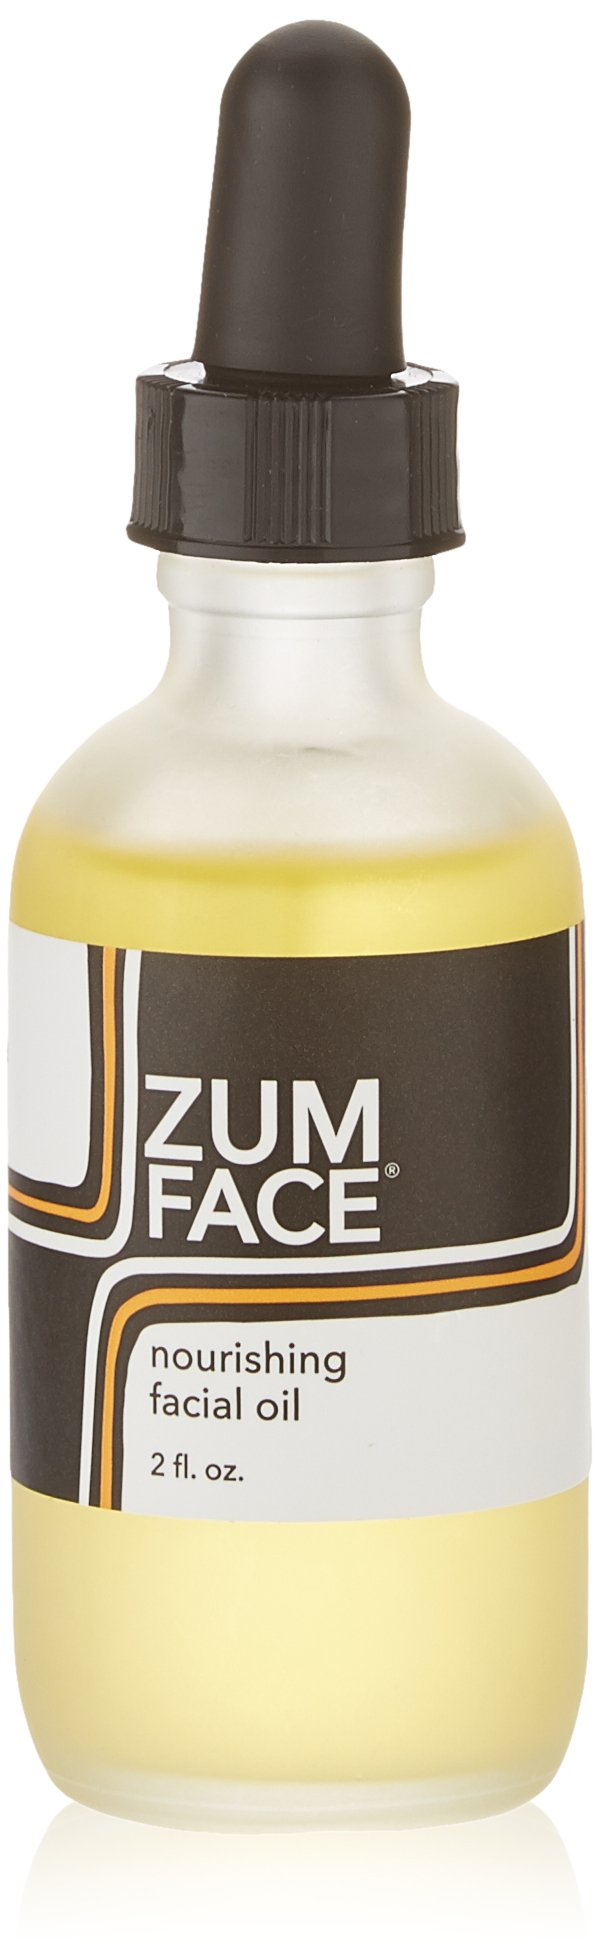 Indigo Wild Zum Face Nourishing Face Oil, 2 Fluid Ounce